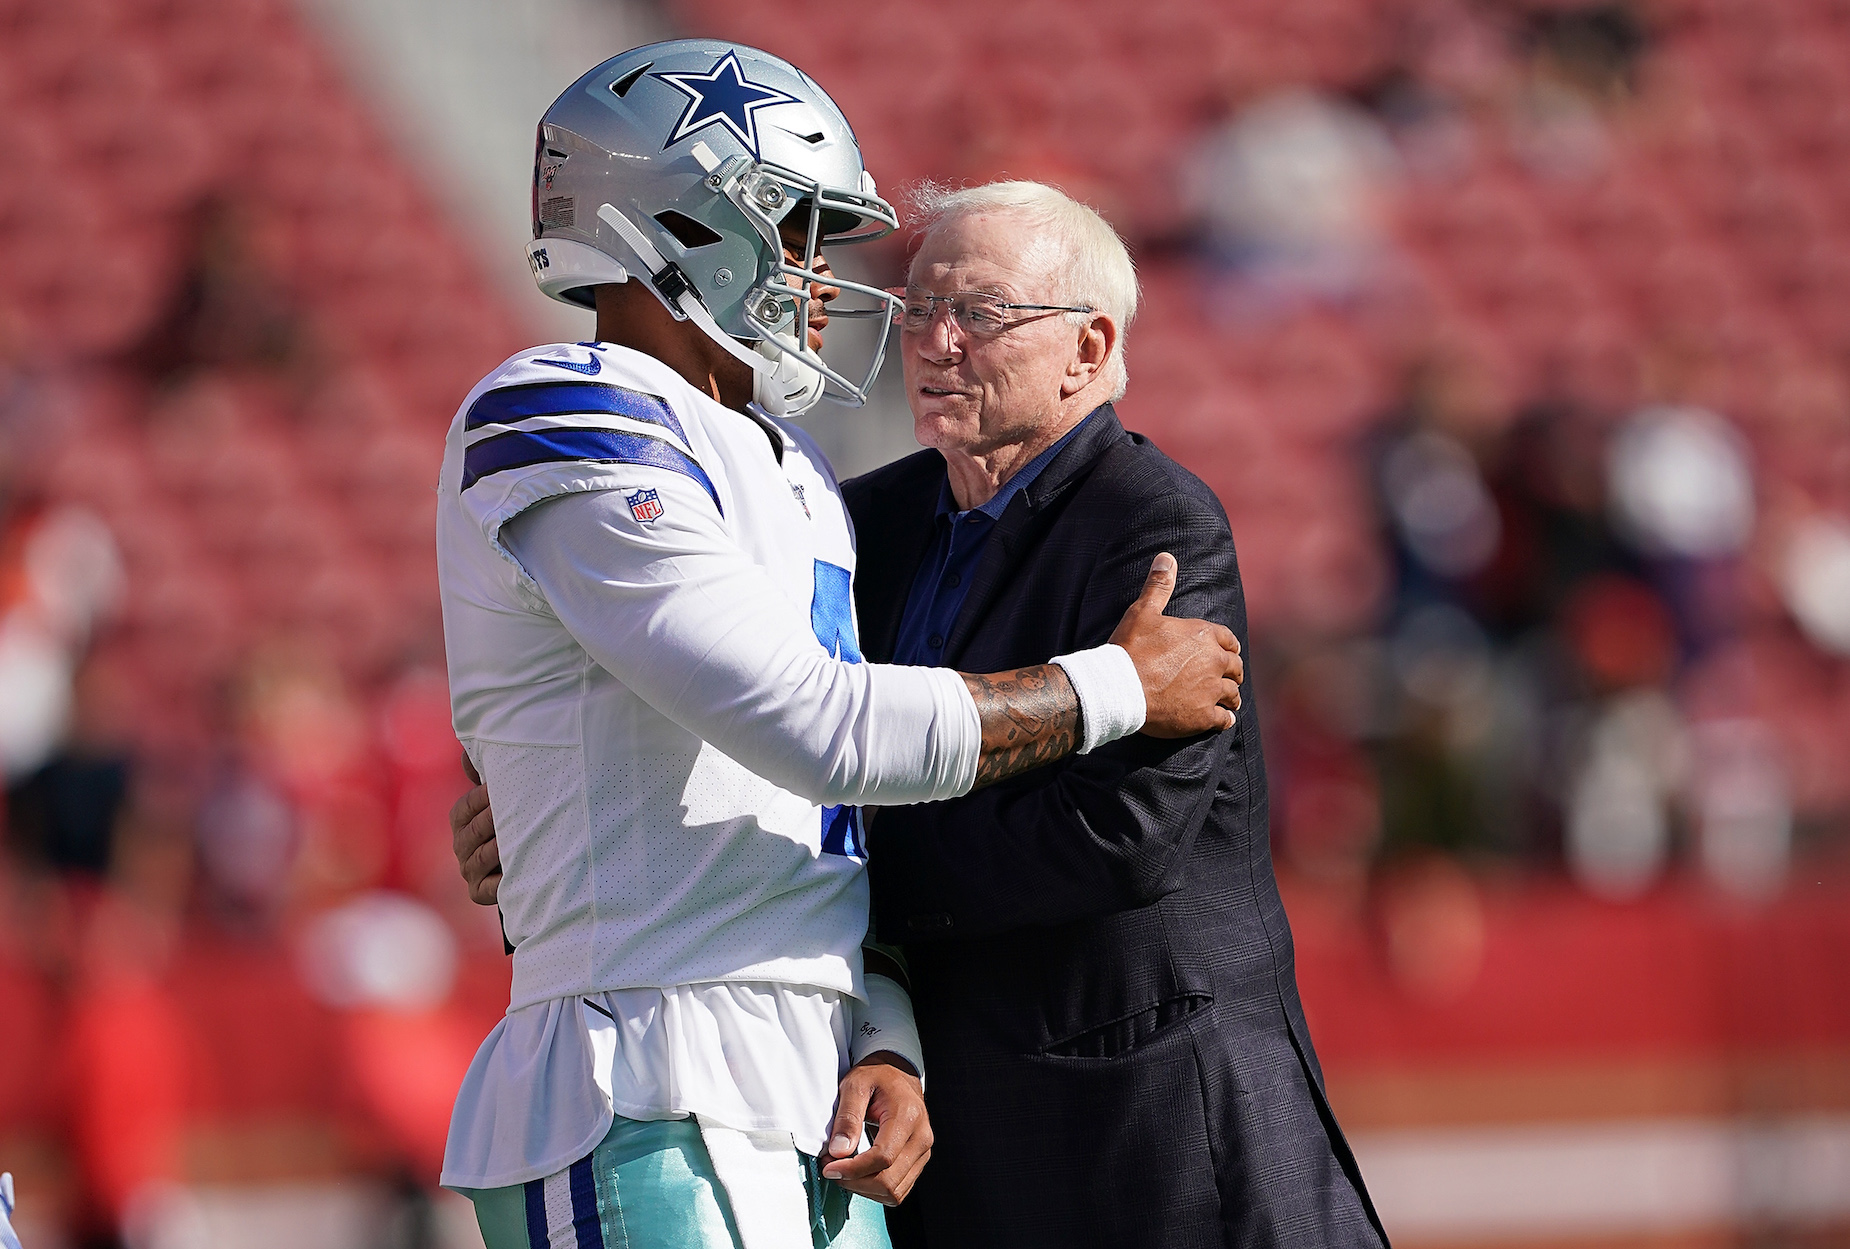 Jerry Jones wants Dak Prescott to run less when he returns to the girdiron.